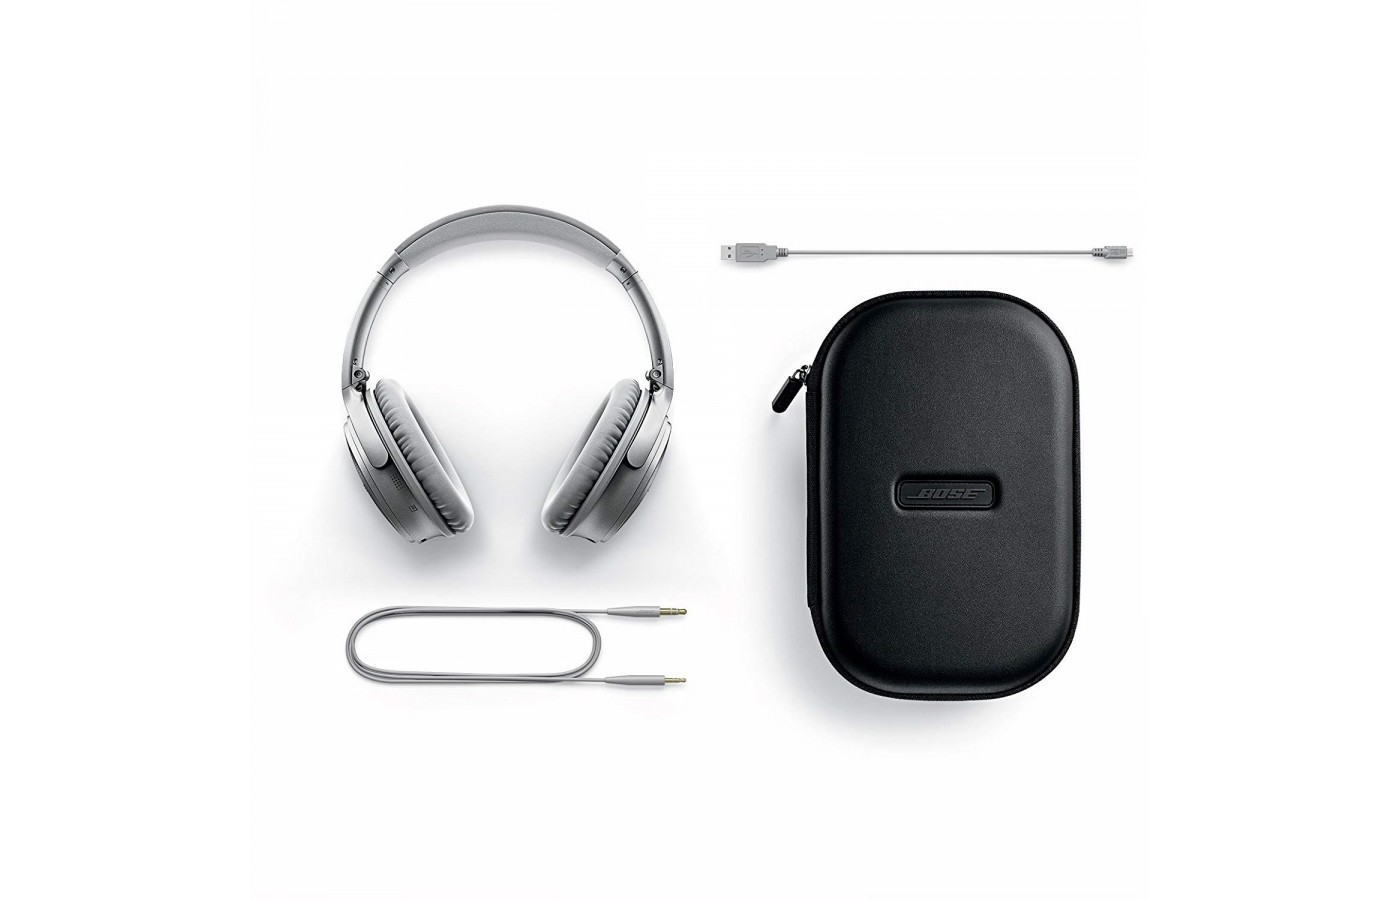 The Bose QuietComfort 35 comes with a wired option as well as a carrying case and charging cord.